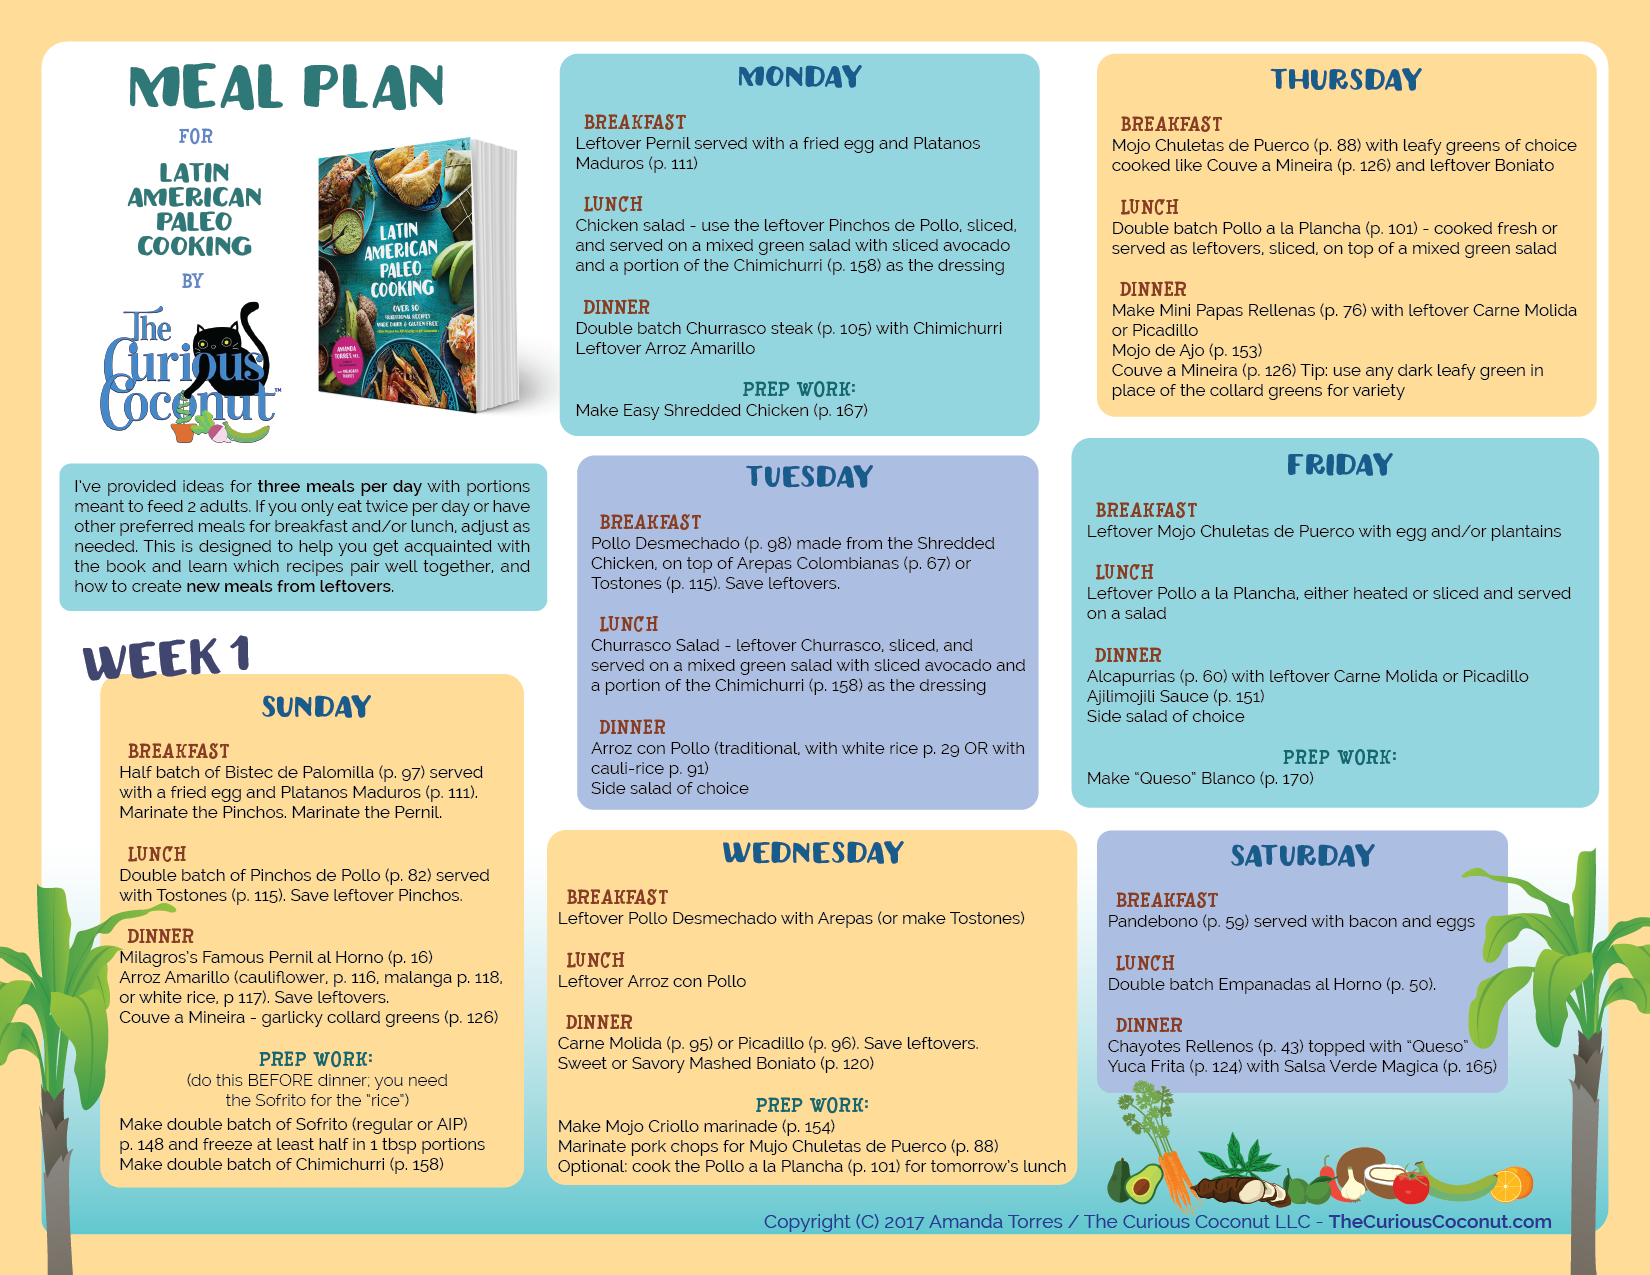 meal plan for latin american paleo cooking-01.png